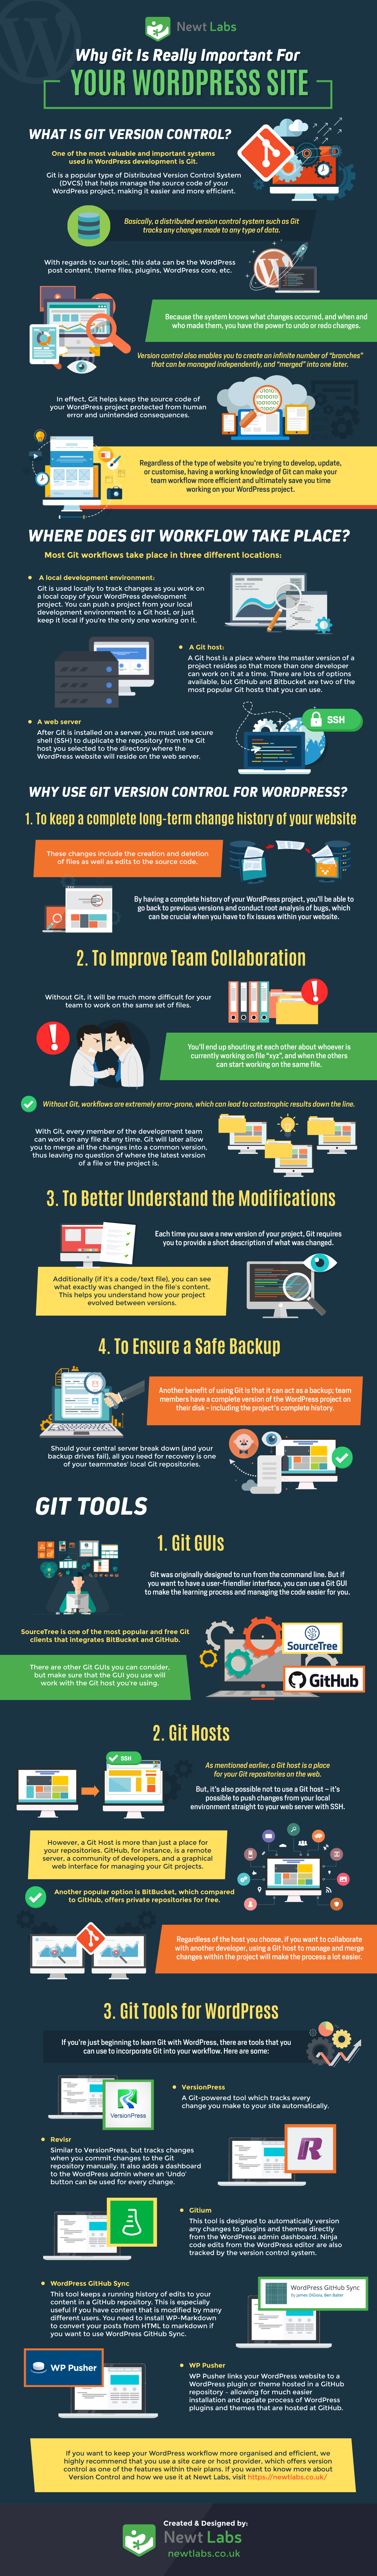 Why Git Is Important For Your WordPress Site - Infographic